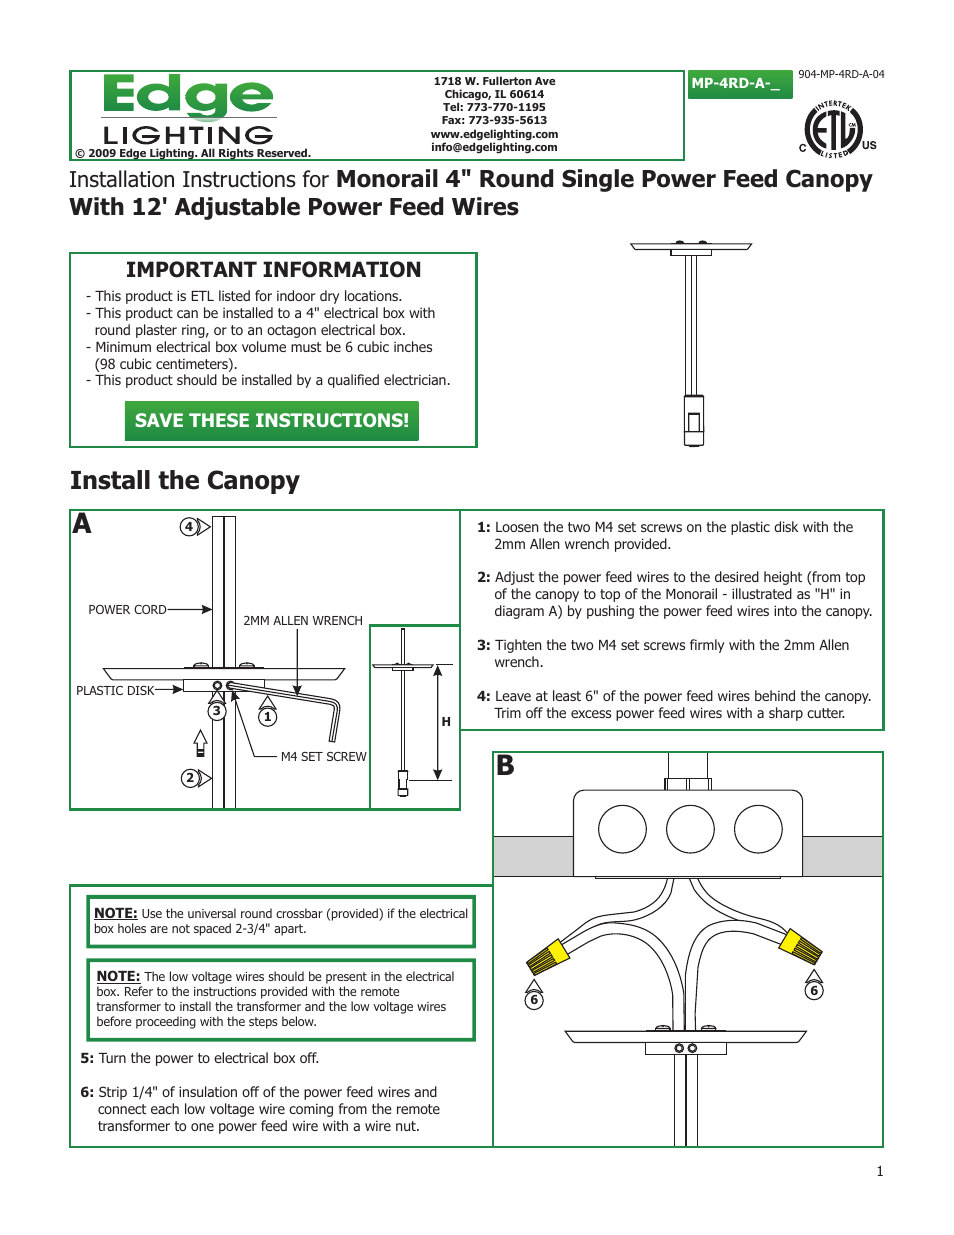 """Edge Lighting 4"""" Round Adjustable Power Feed Canopies User Manual 